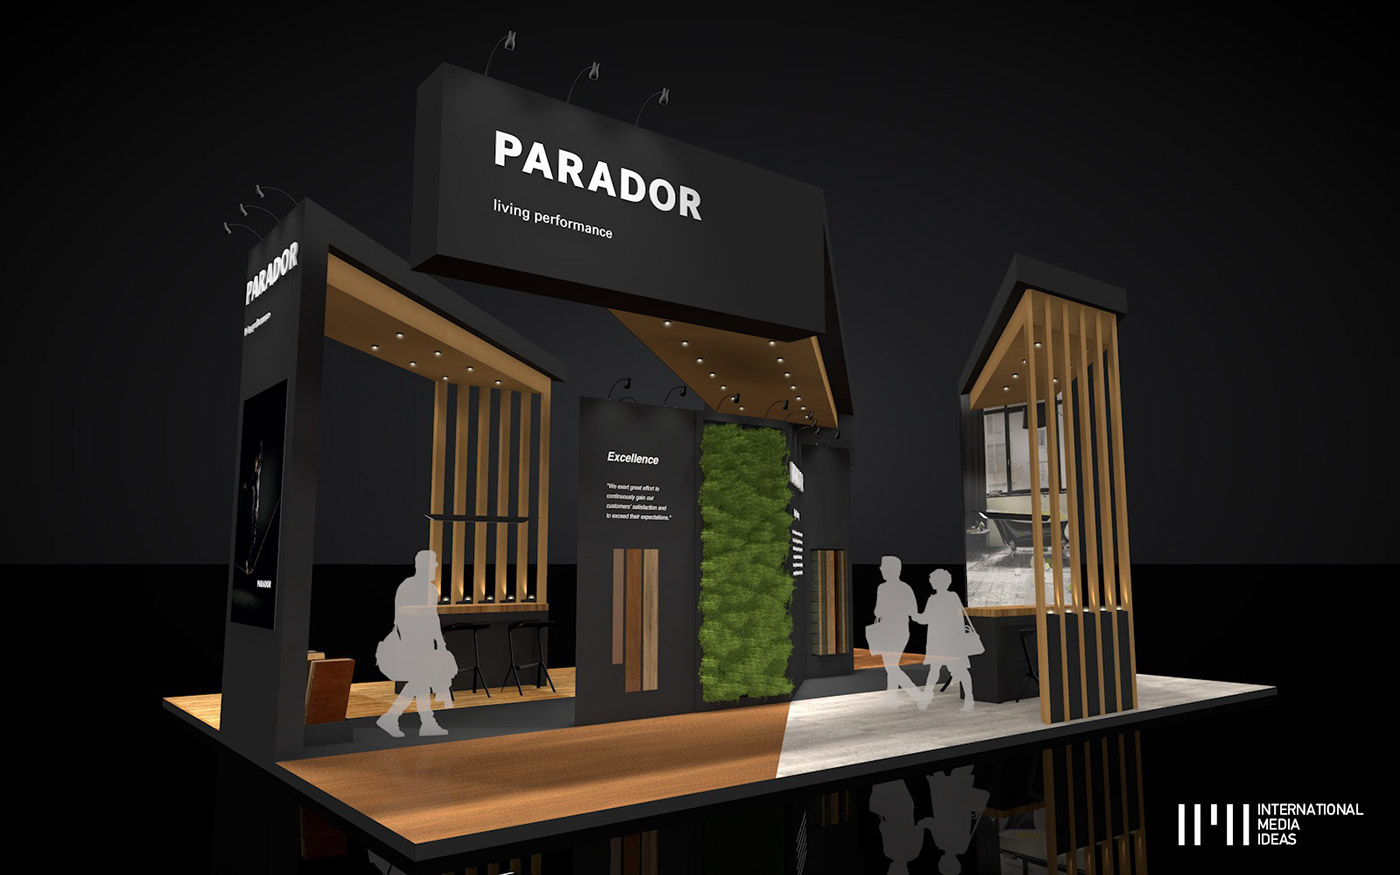 Exhibition Stand Behance : Parador exhibition stand on behance